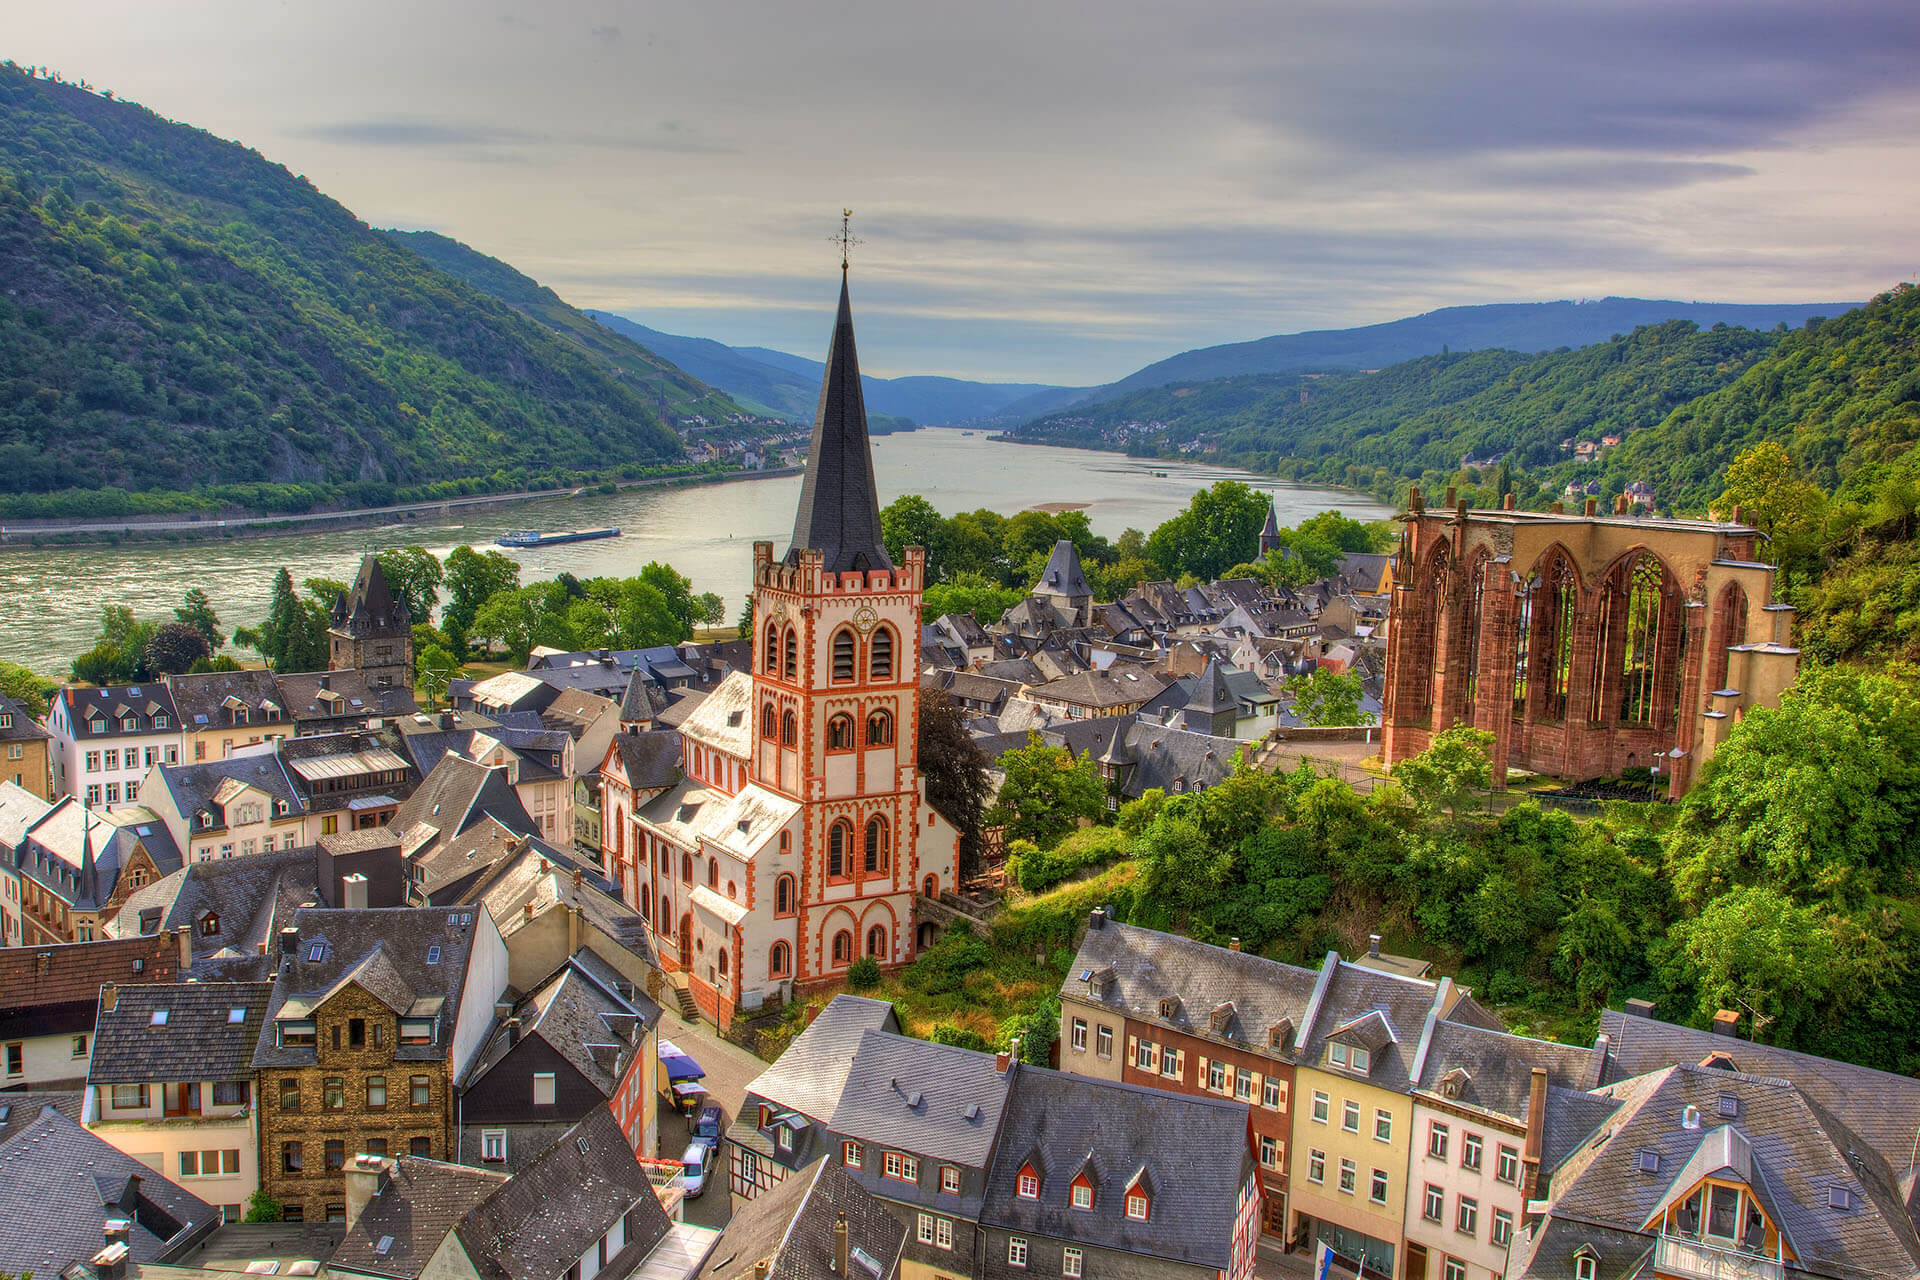 Bacharach from the Postenturm